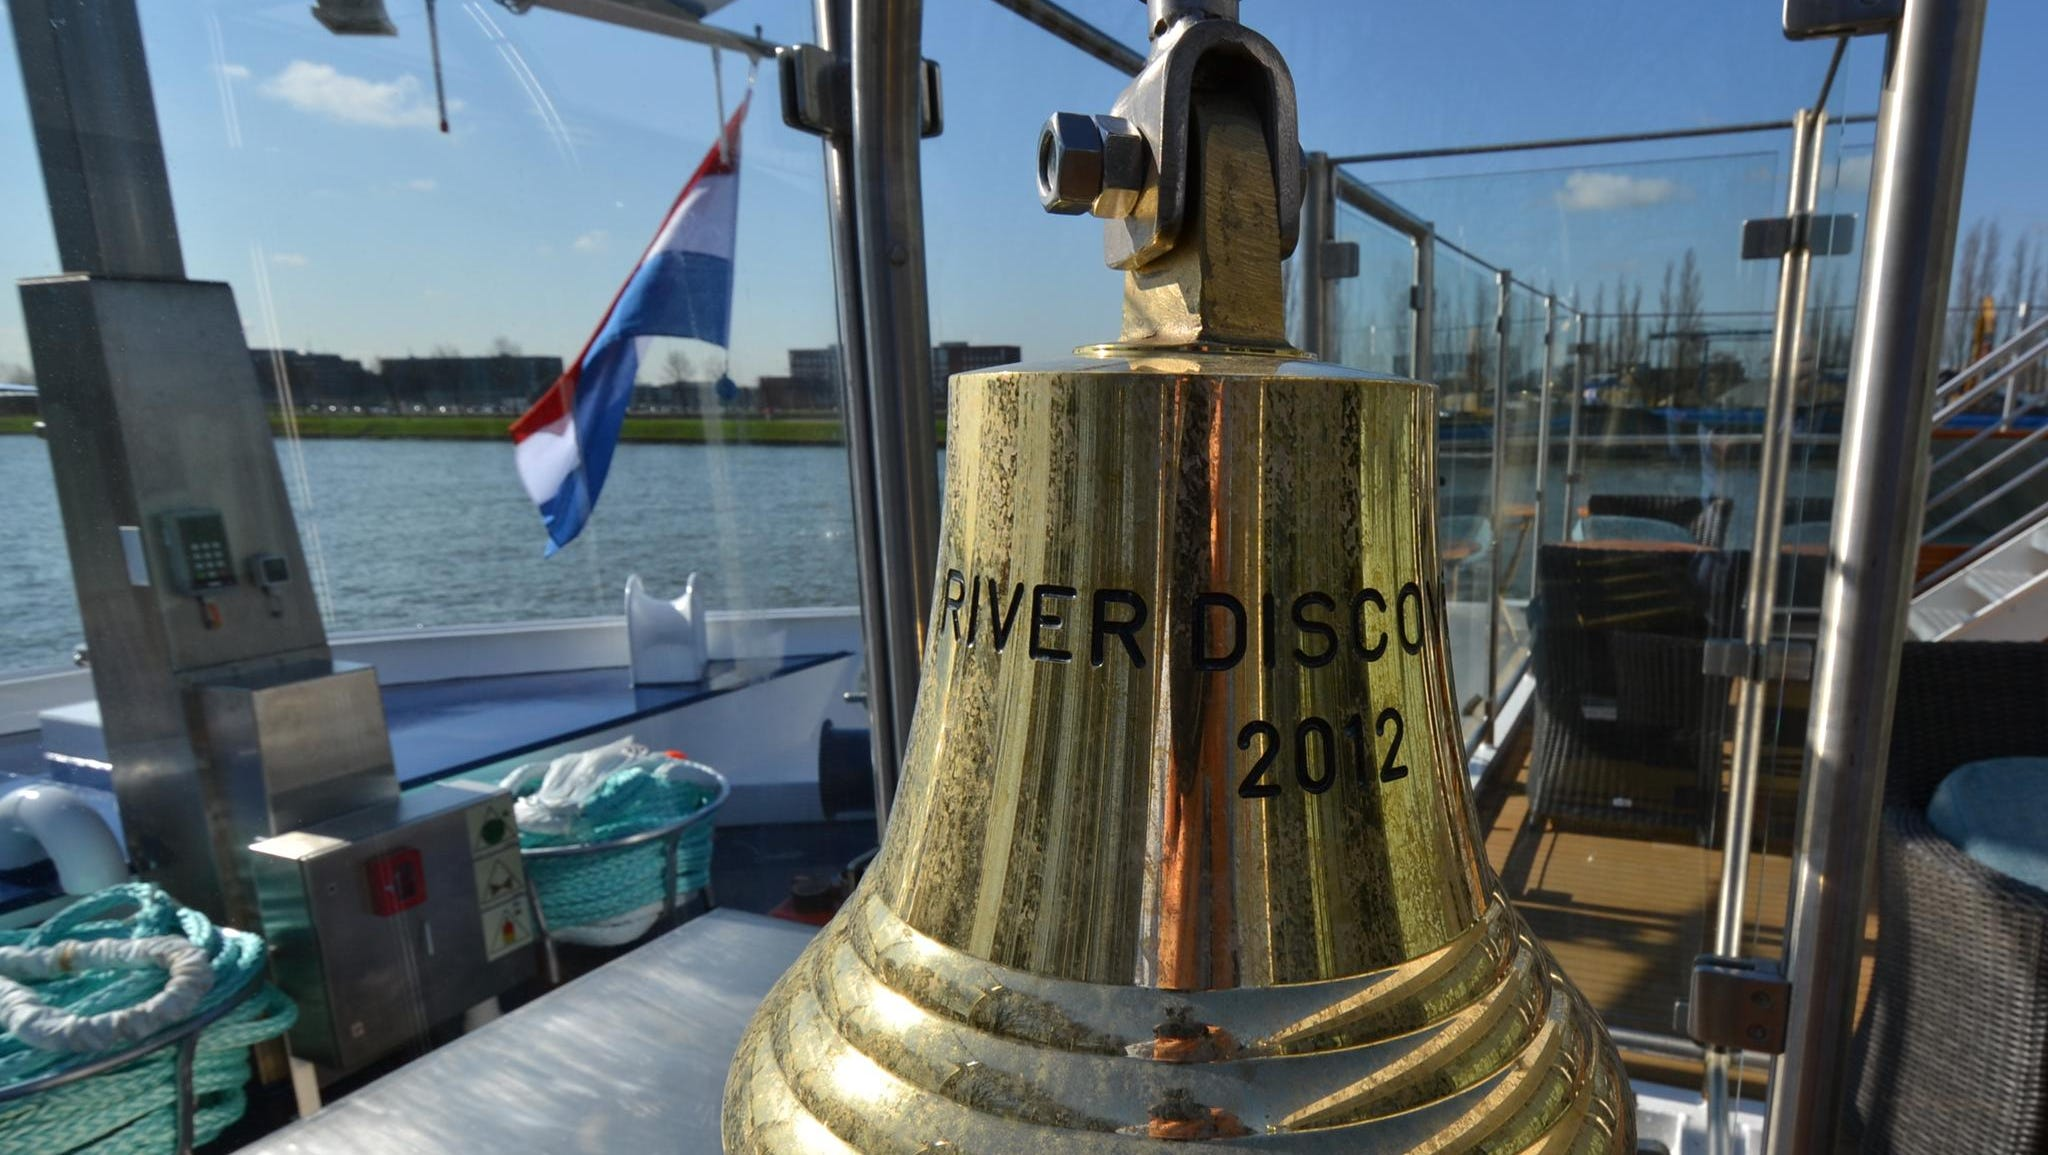 The ship's bell, located at the front of the vessel.